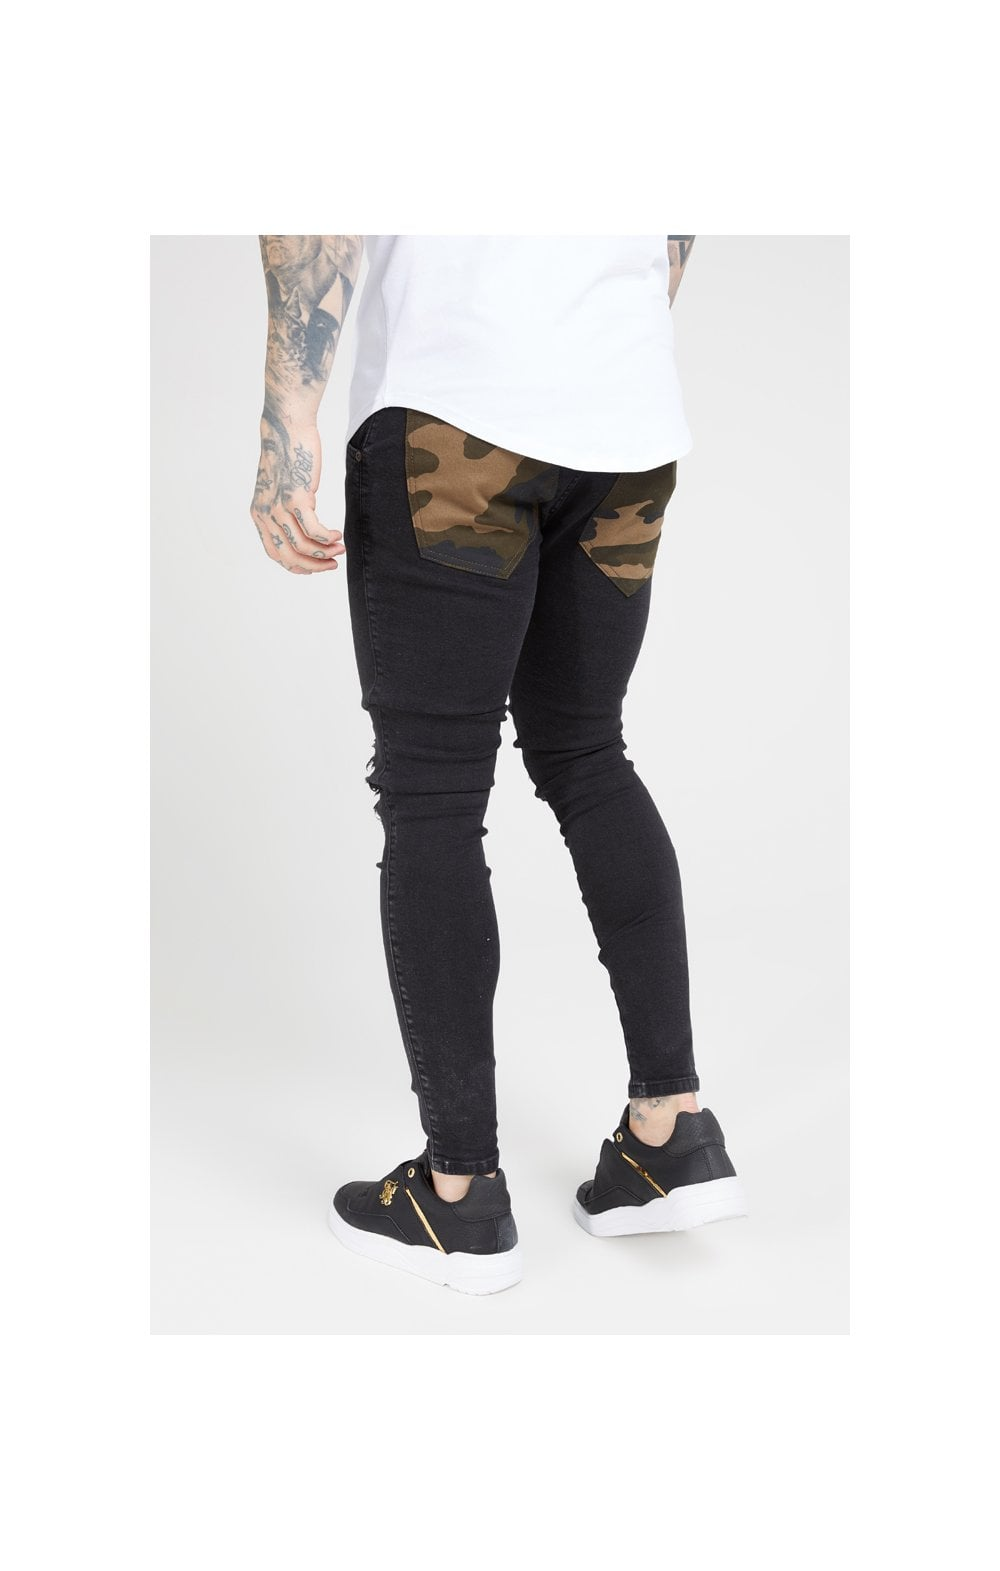 Load image into Gallery viewer, SikSilk Burst Knee Low Rise Denims - Washed Black & Camo (2)